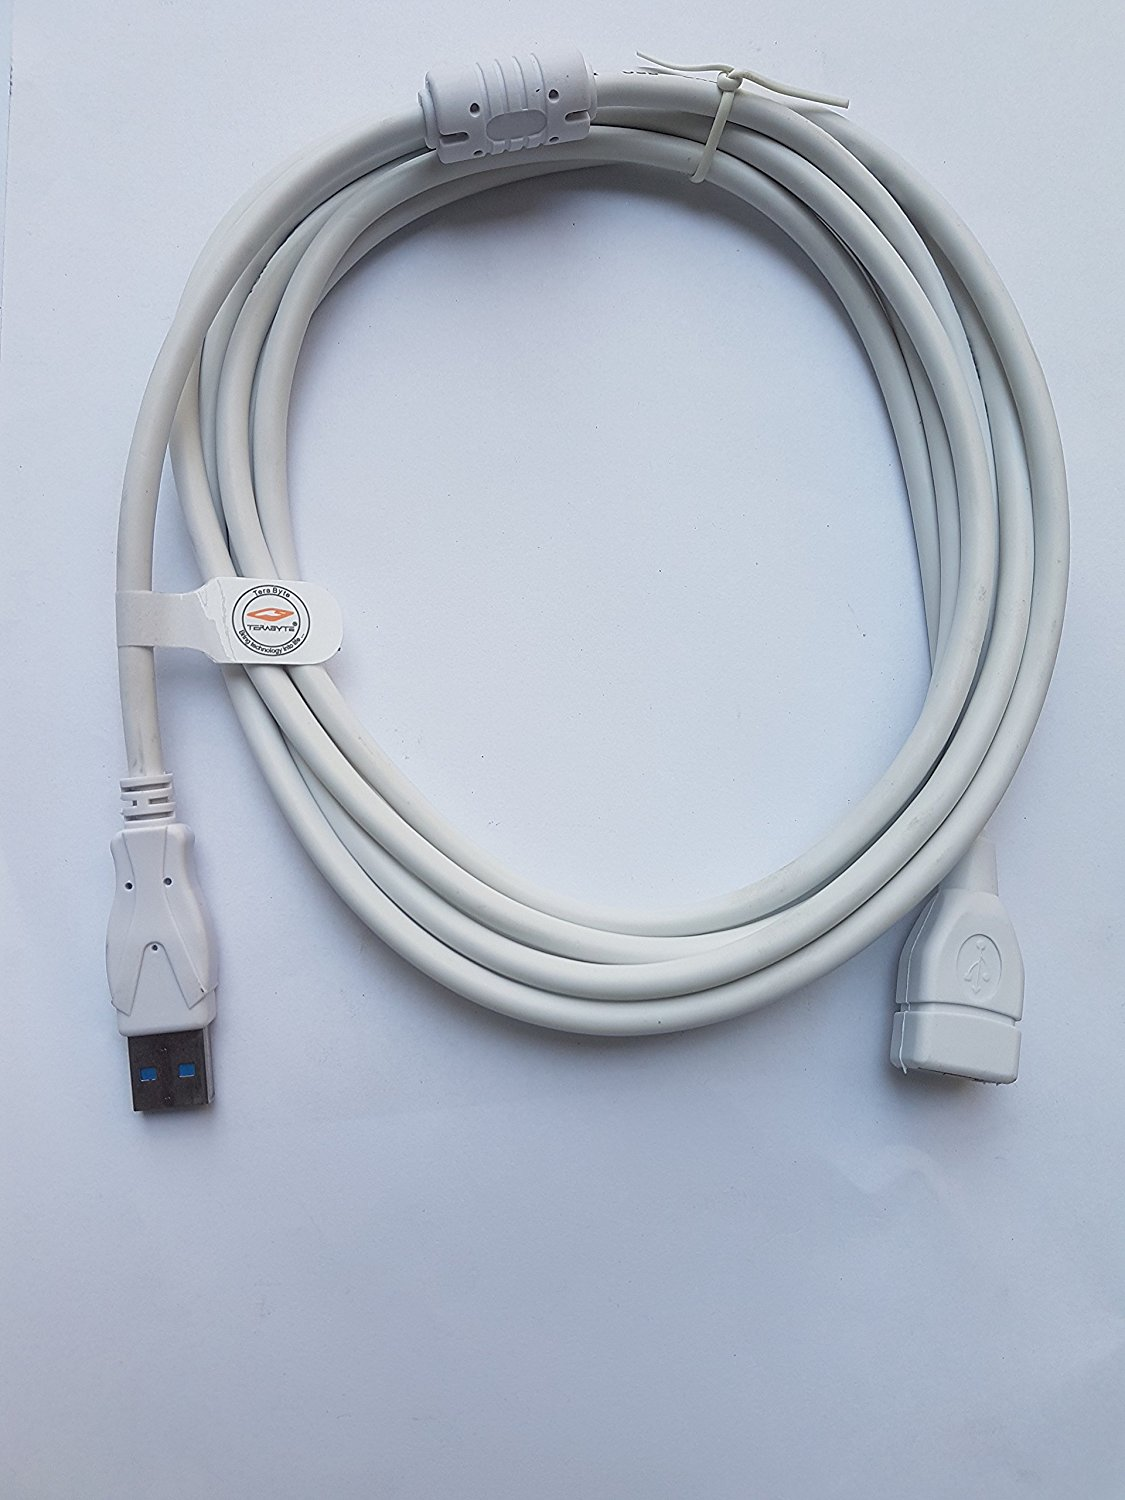 Terabyte USB 3.0 Super Speed Extension Cable 3 Meter FULL COPPER